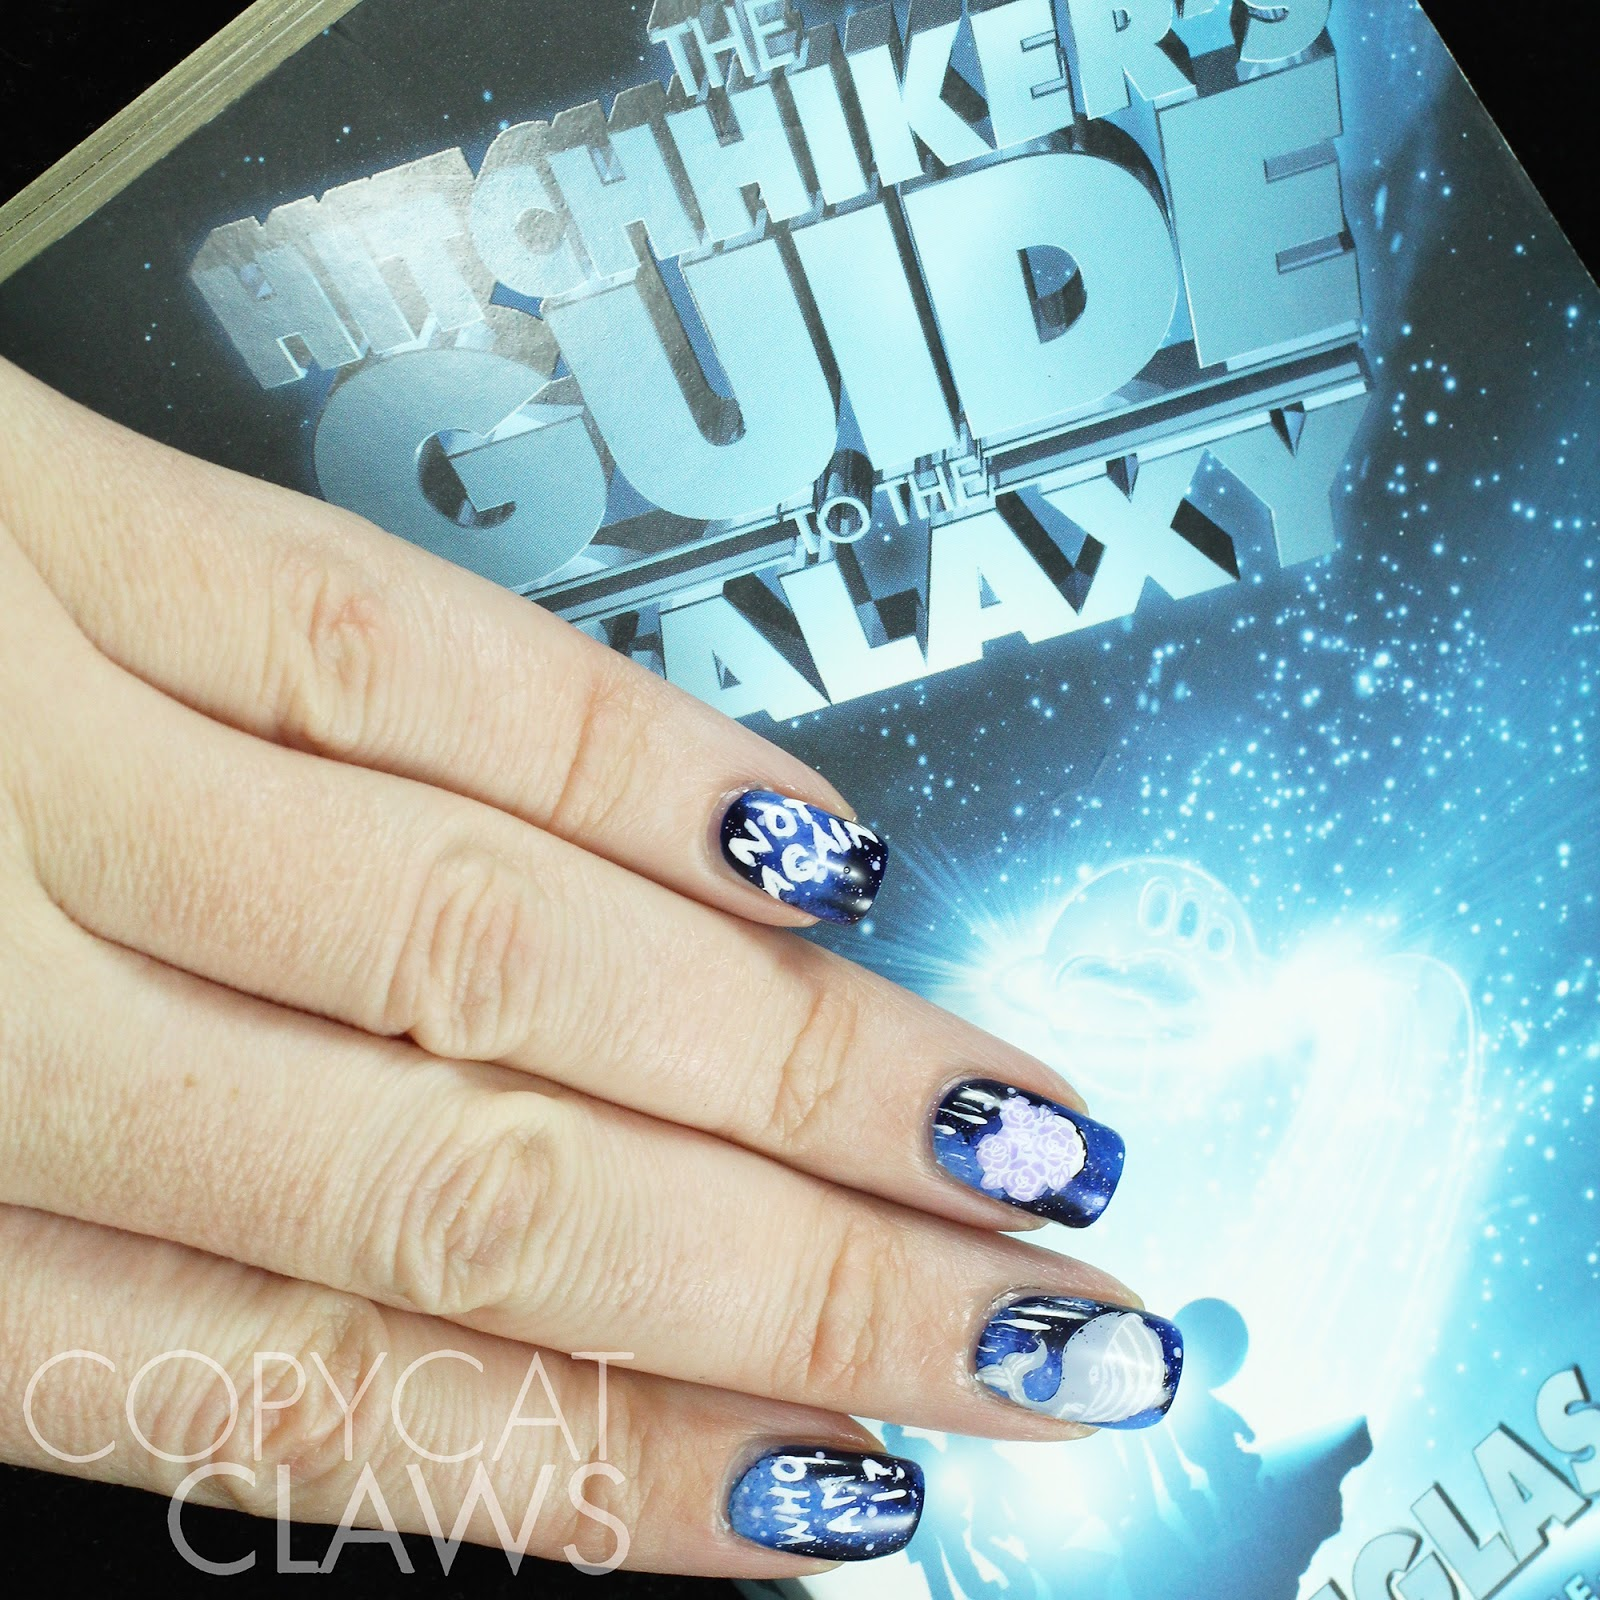 Nail art guides images nail art and nail design ideas copycat claws the hitchhikers guide to the galaxy nail art prinsesfo images prinsesfo Choice Image